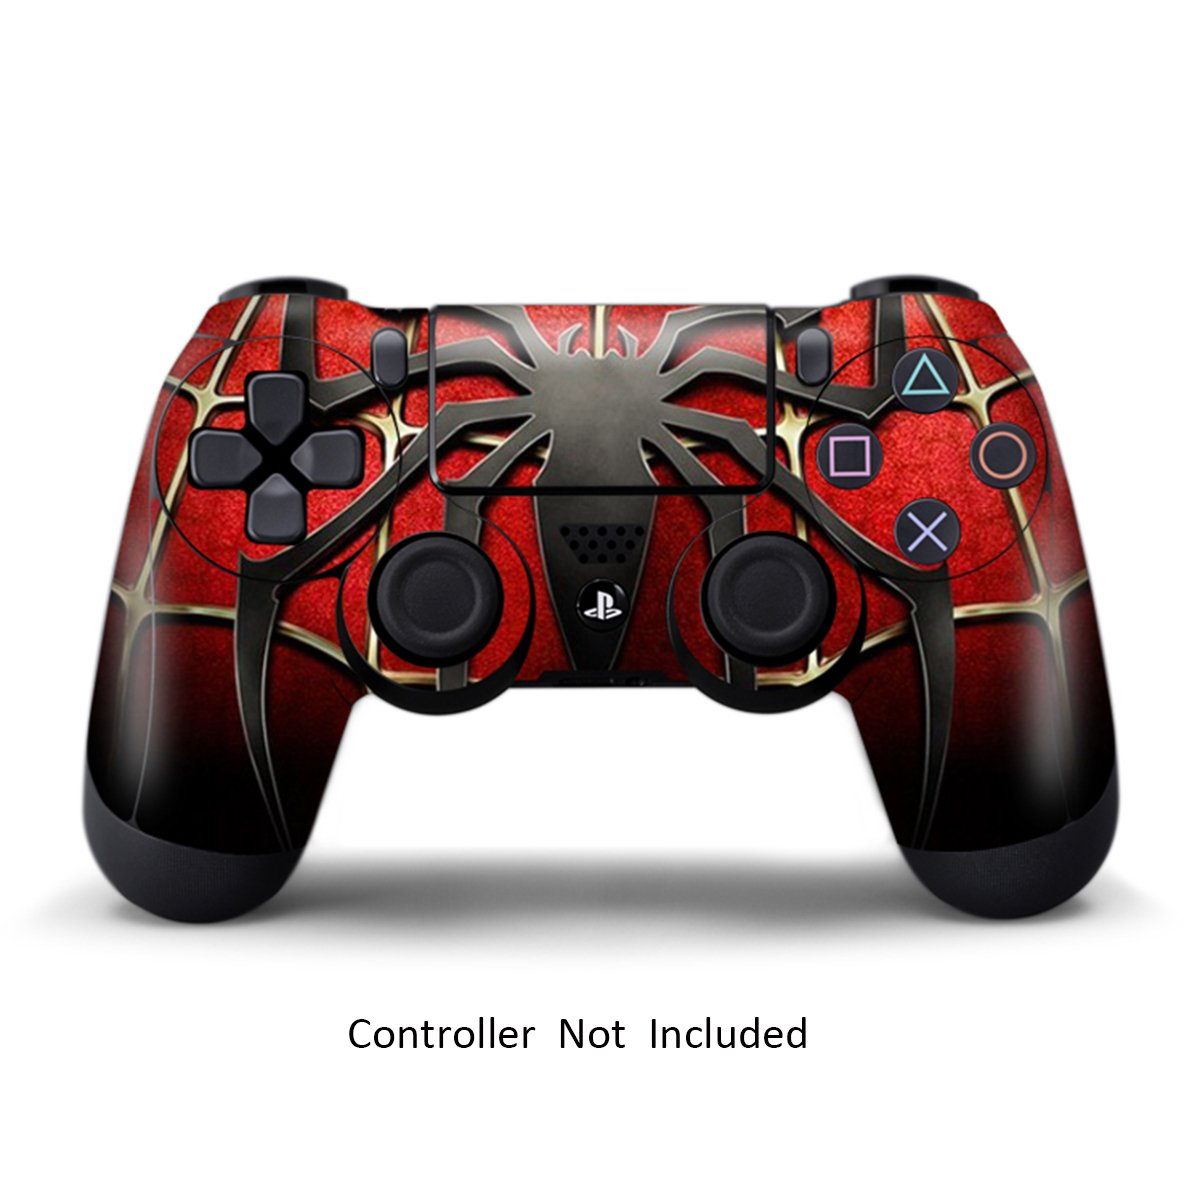 Skins for PS4 Controller - Stickers for Playstation 4 Games - Decals Cover for PS4 Slim